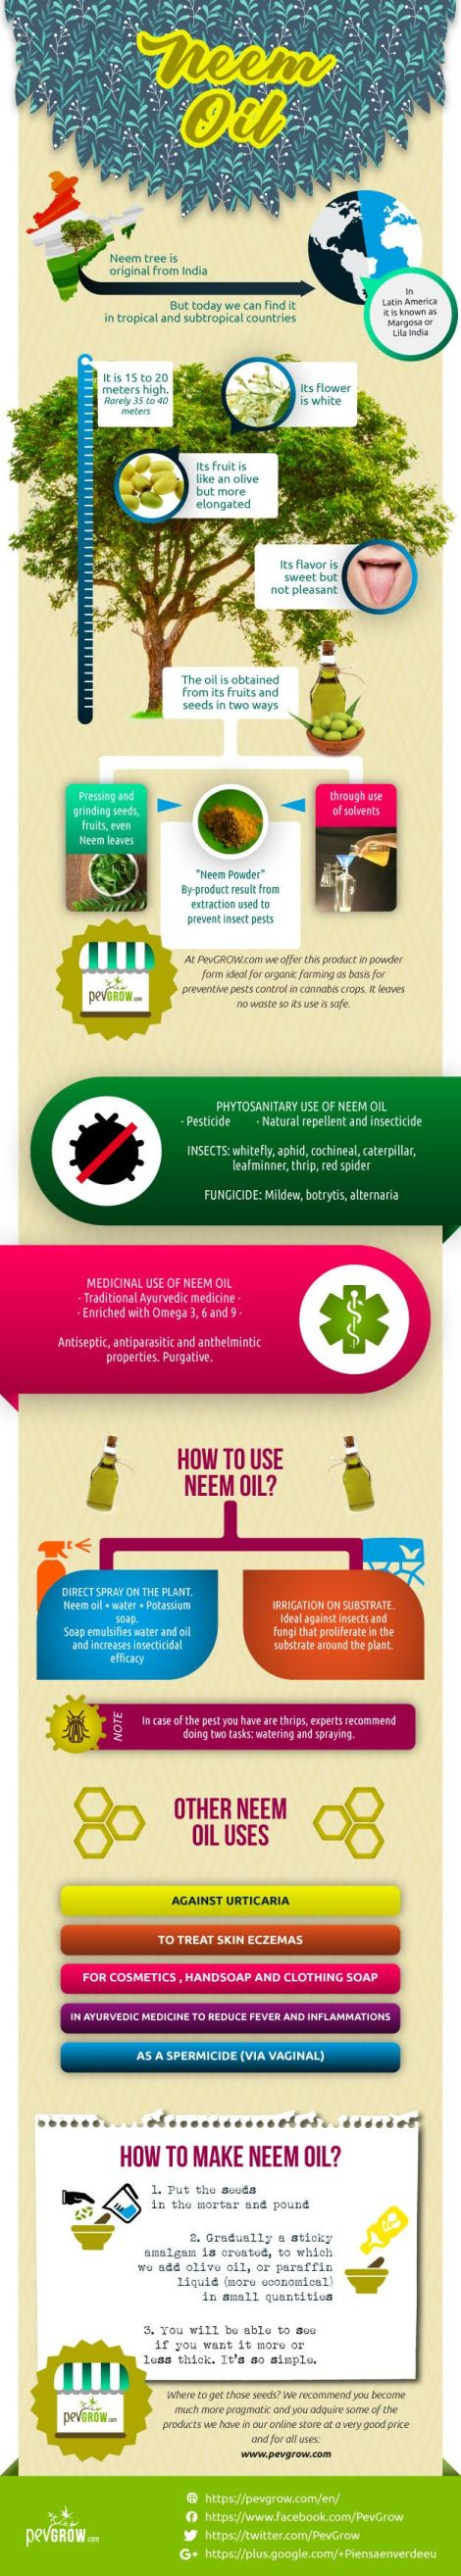 neem-oil-infographic